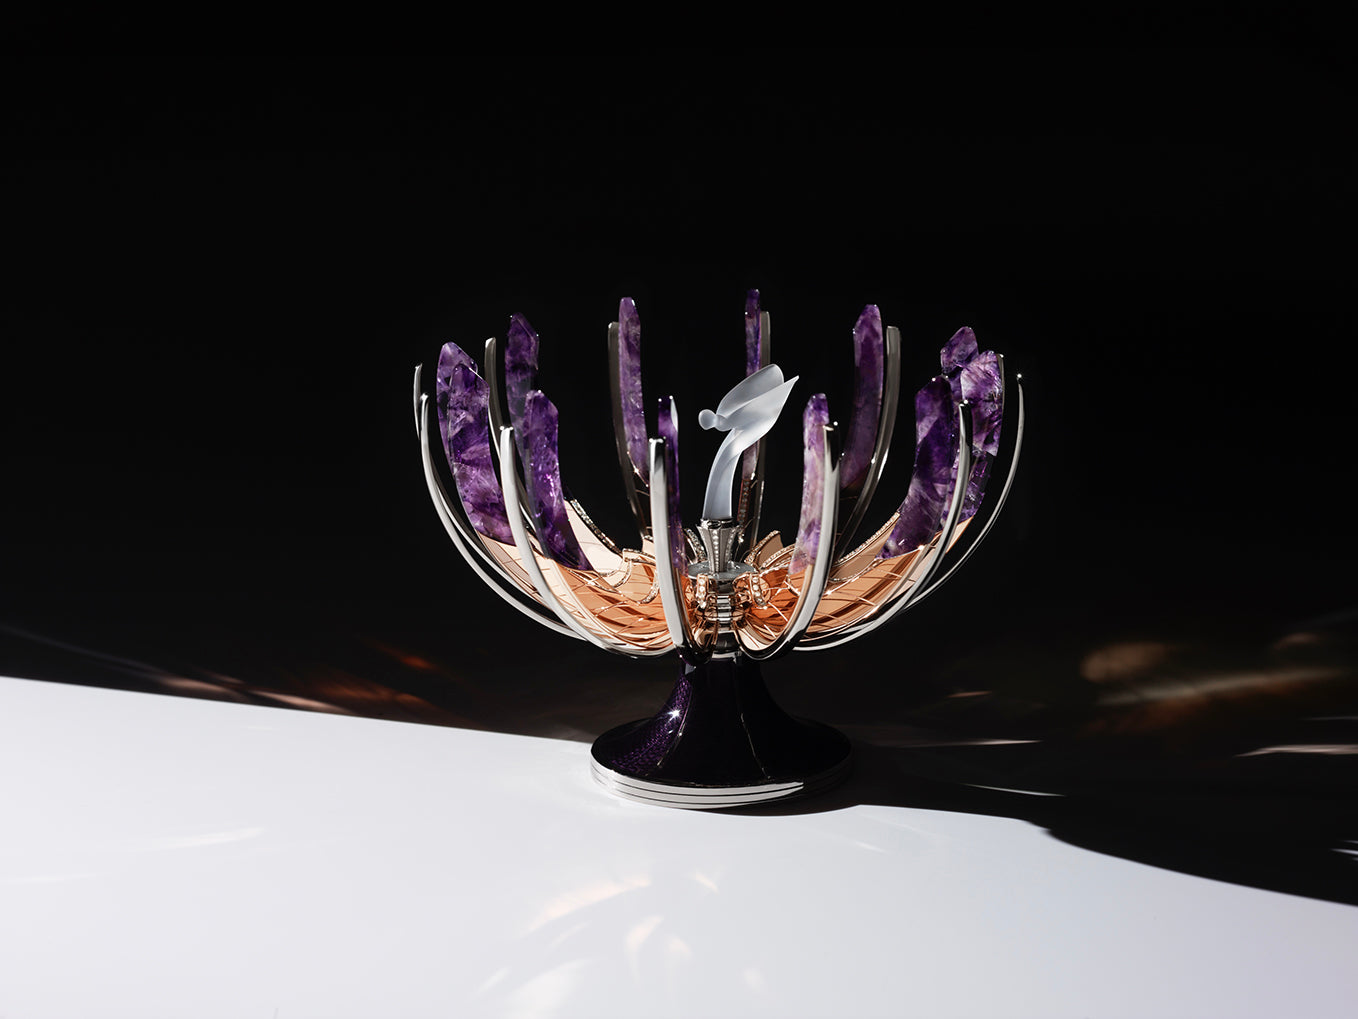 Spirit of Ecstasy Fabergé egg designed by Rolls-Royce